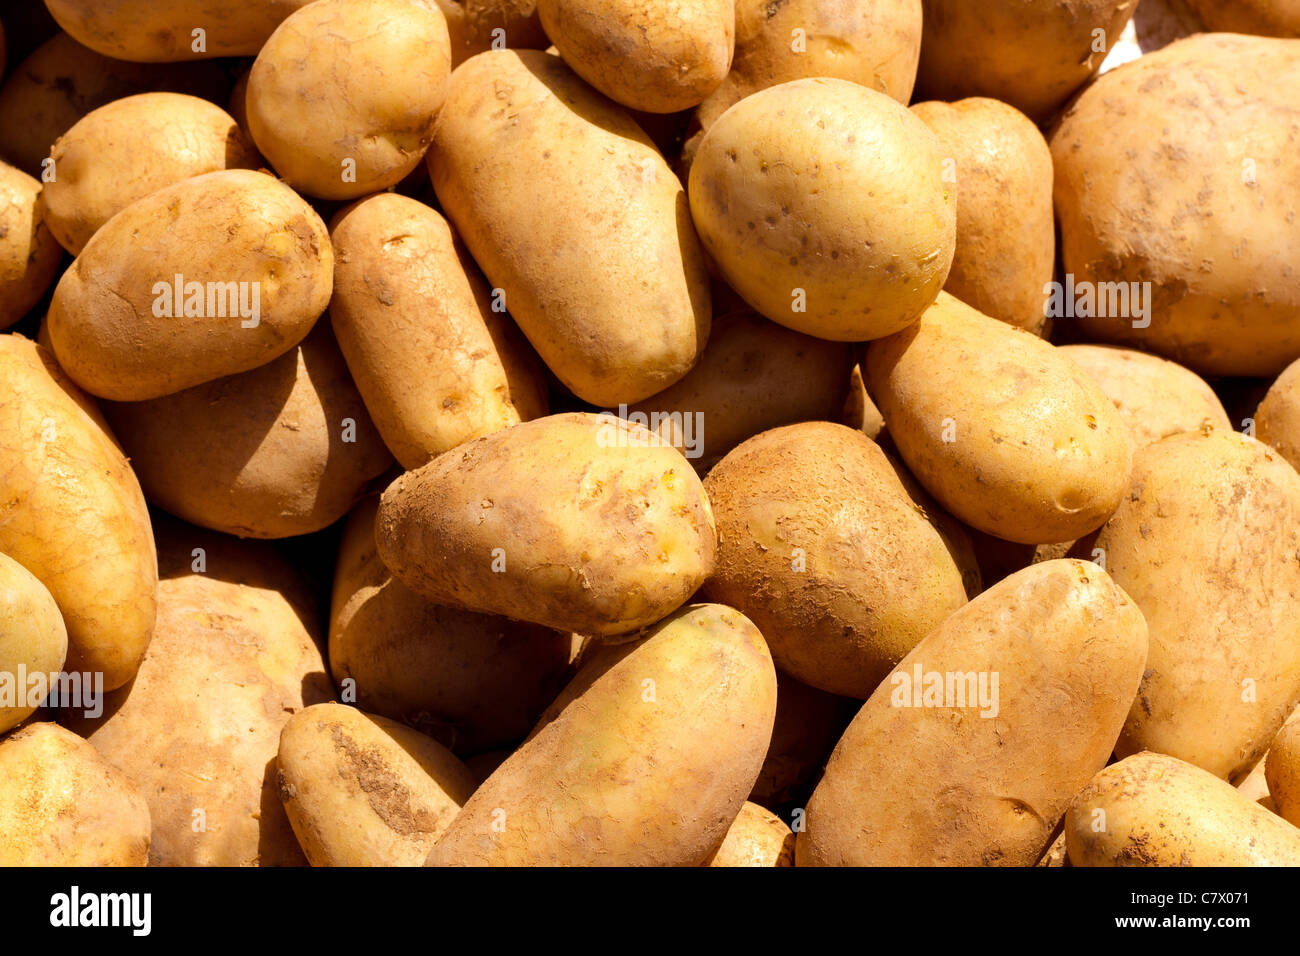 brown potatoes pattern texture in market - Stock Image